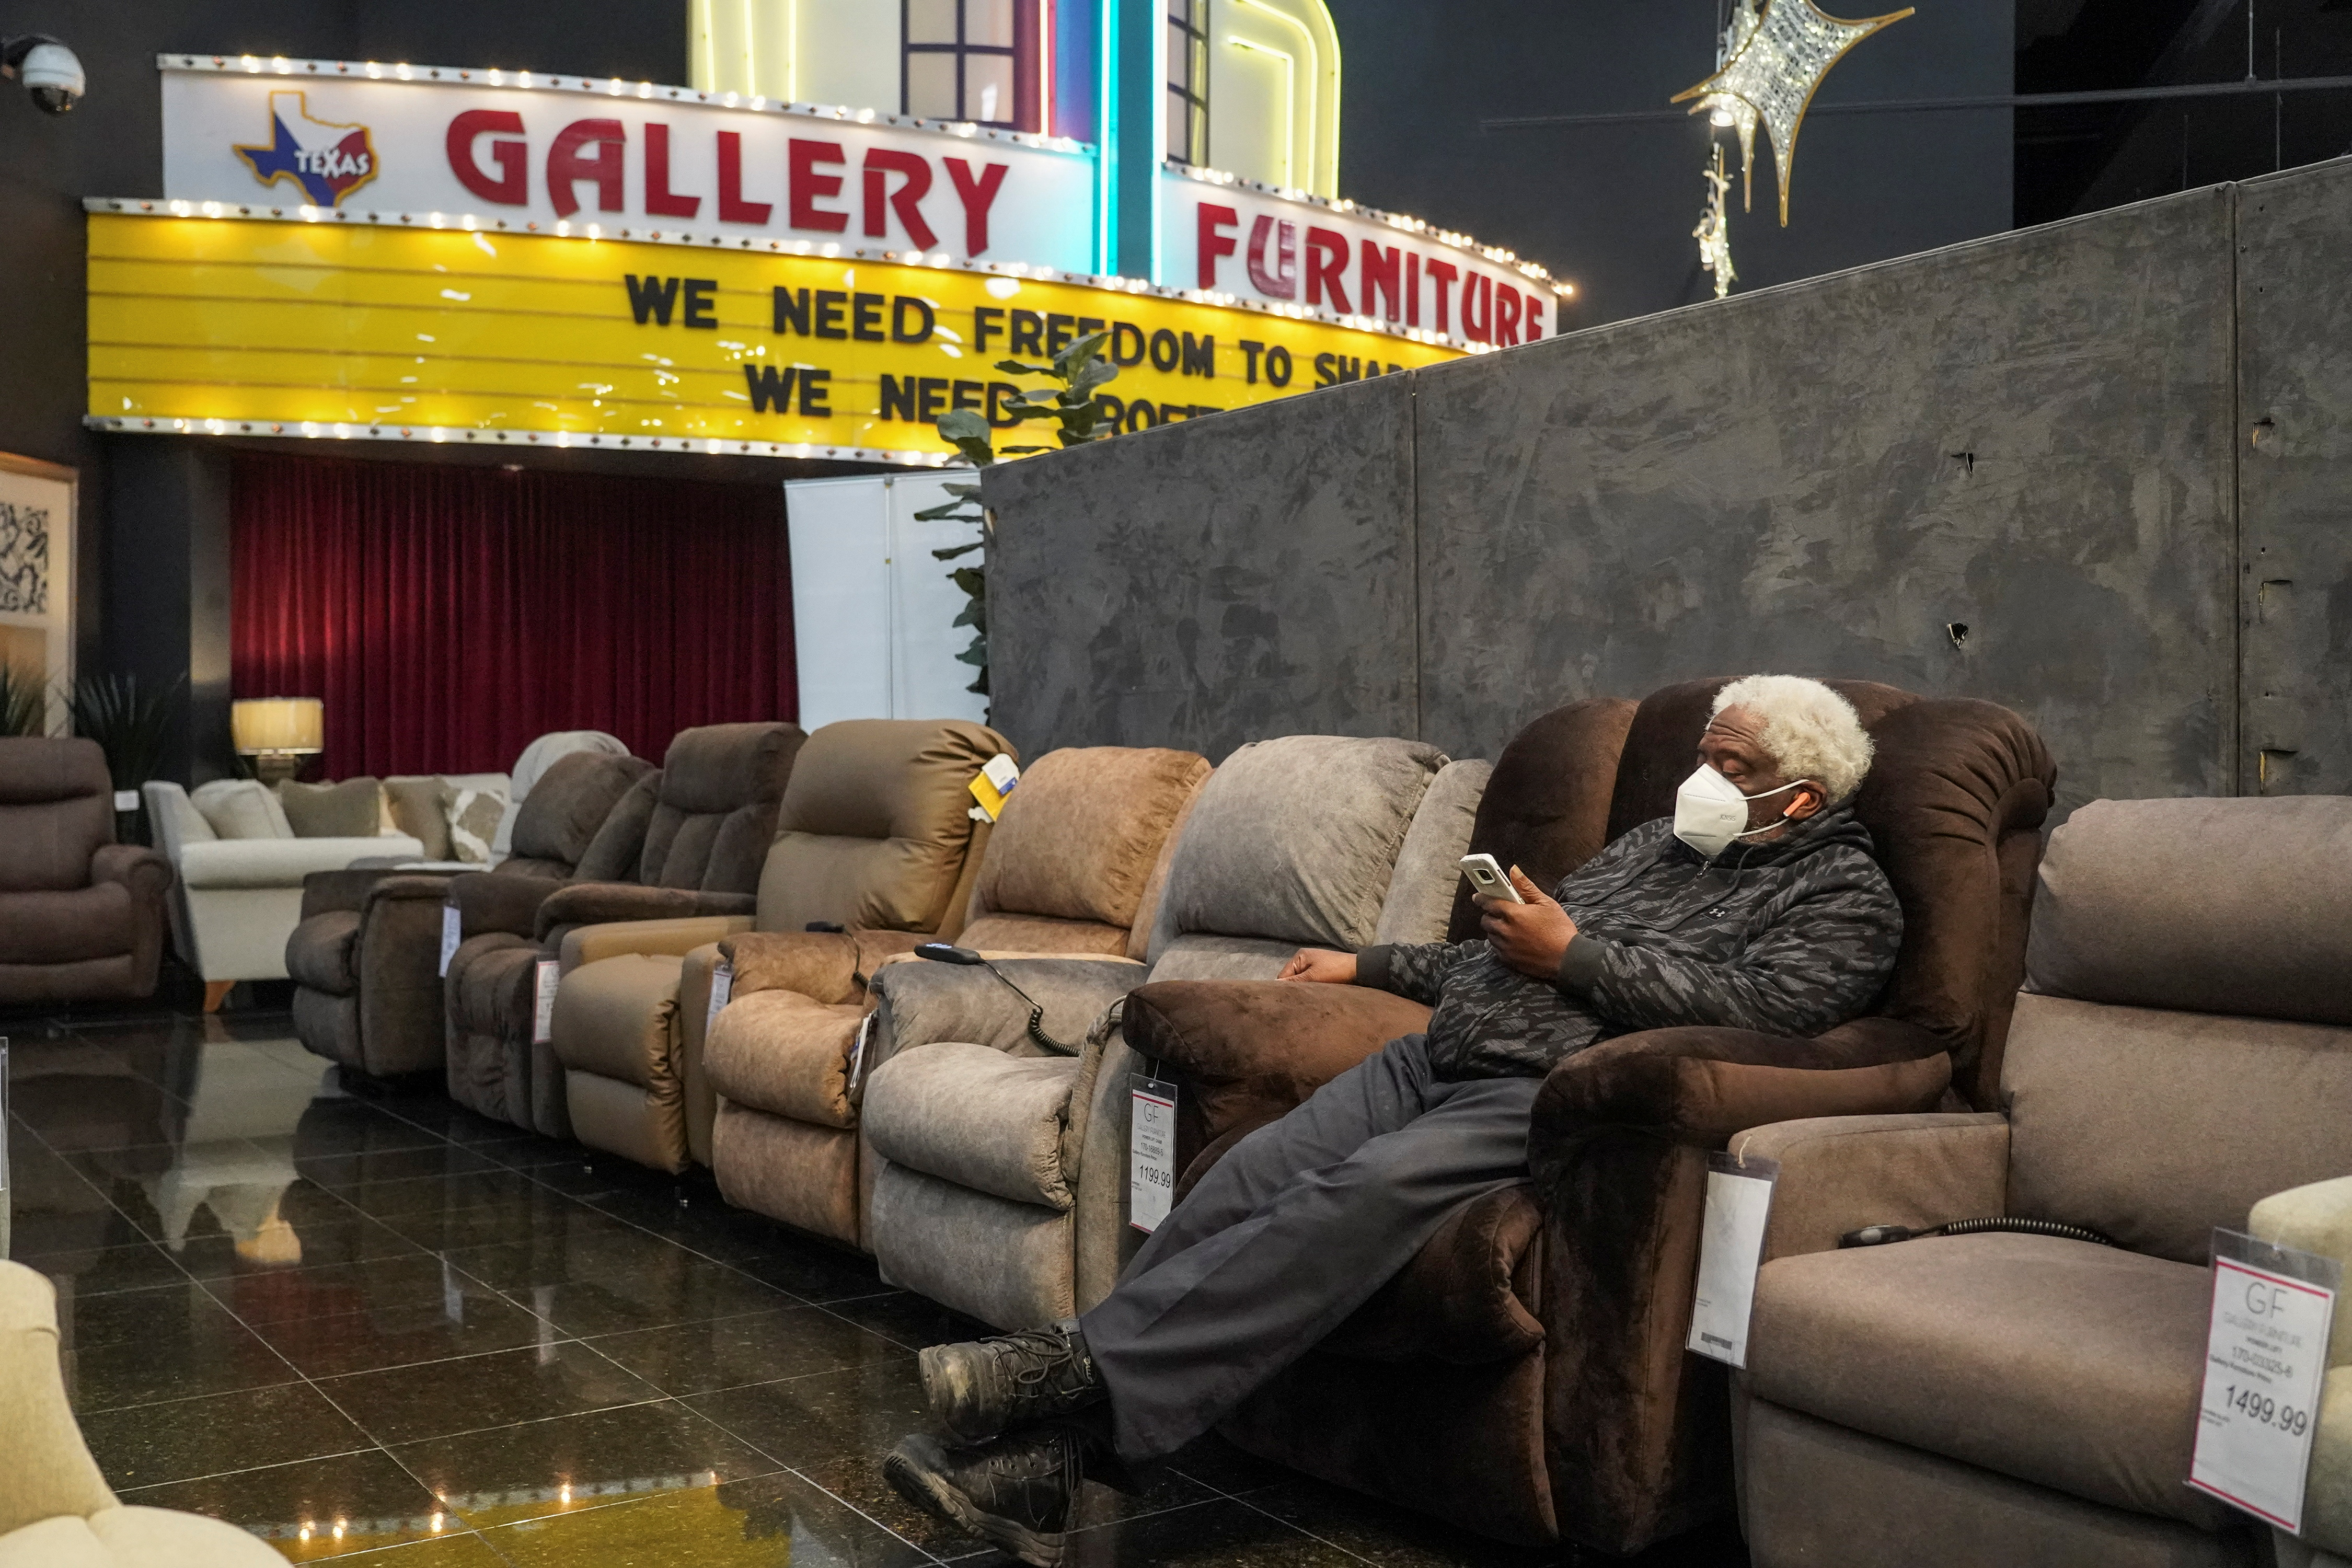 Alvin Williams, 66, checks on his smartphone while taking a shelter at Gallery Furniture store which opened its door and transformed into a warming station after winter weather caused electricity blackouts in Houston, Texas, U.S. February 17, 2021.  REUTERS/Go Nakamura